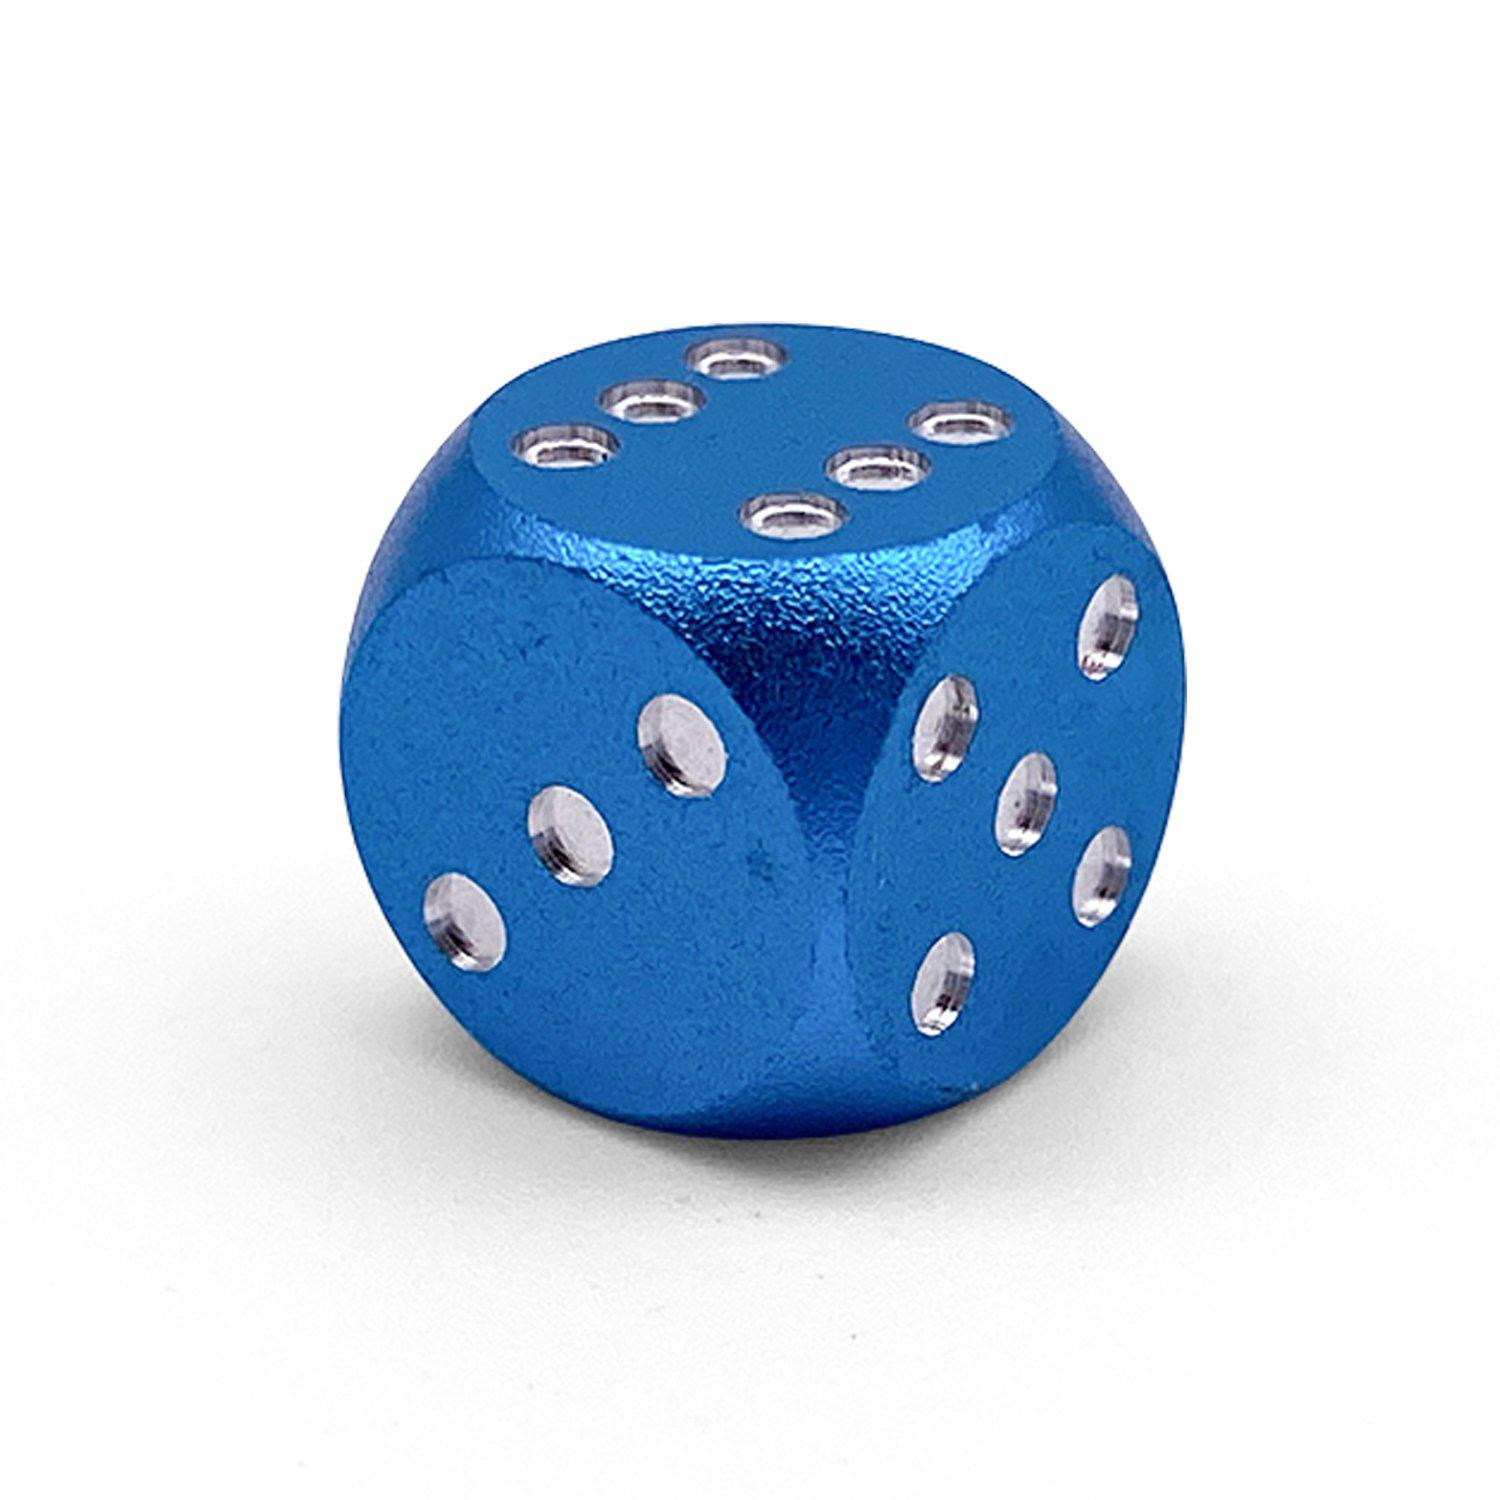 Single Aluminum D6 Mini - Round Edges - Sea Teal